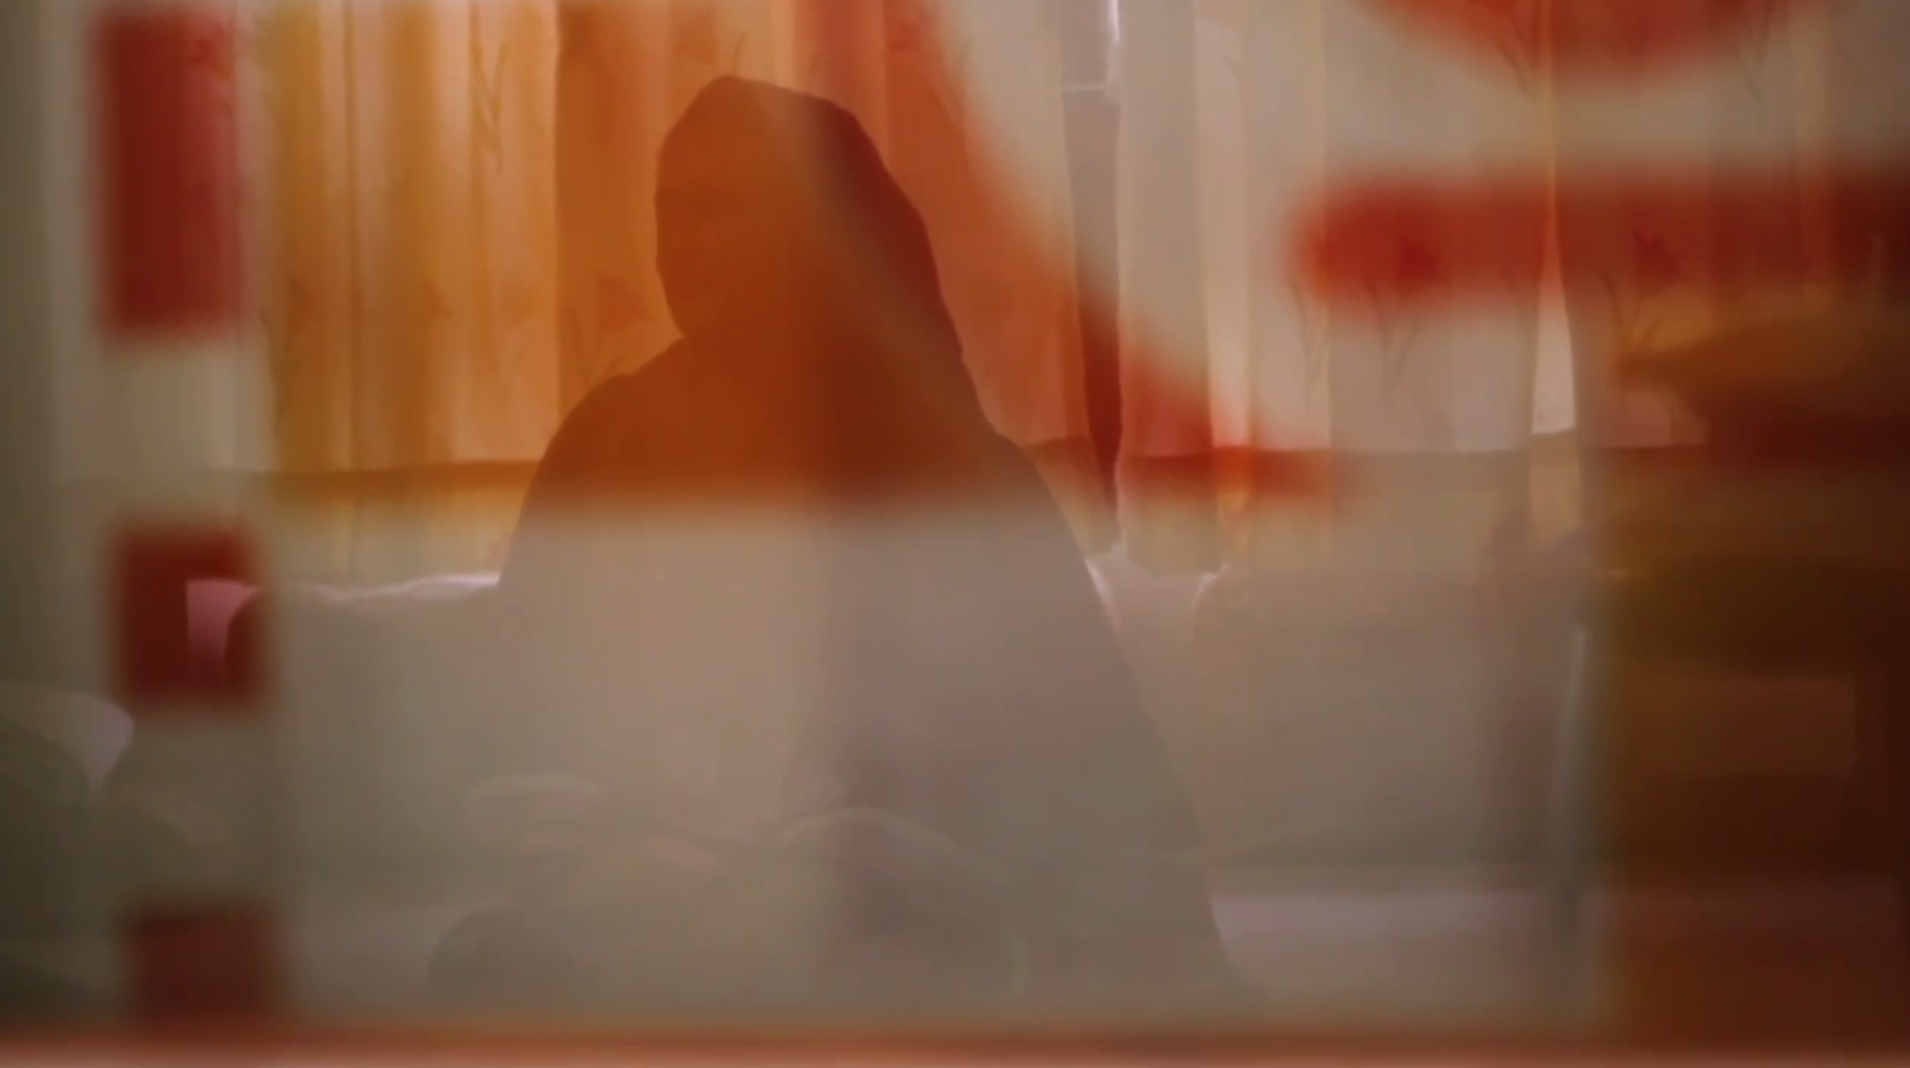 Silhouette of an unidentifable woman behidn a curtain.